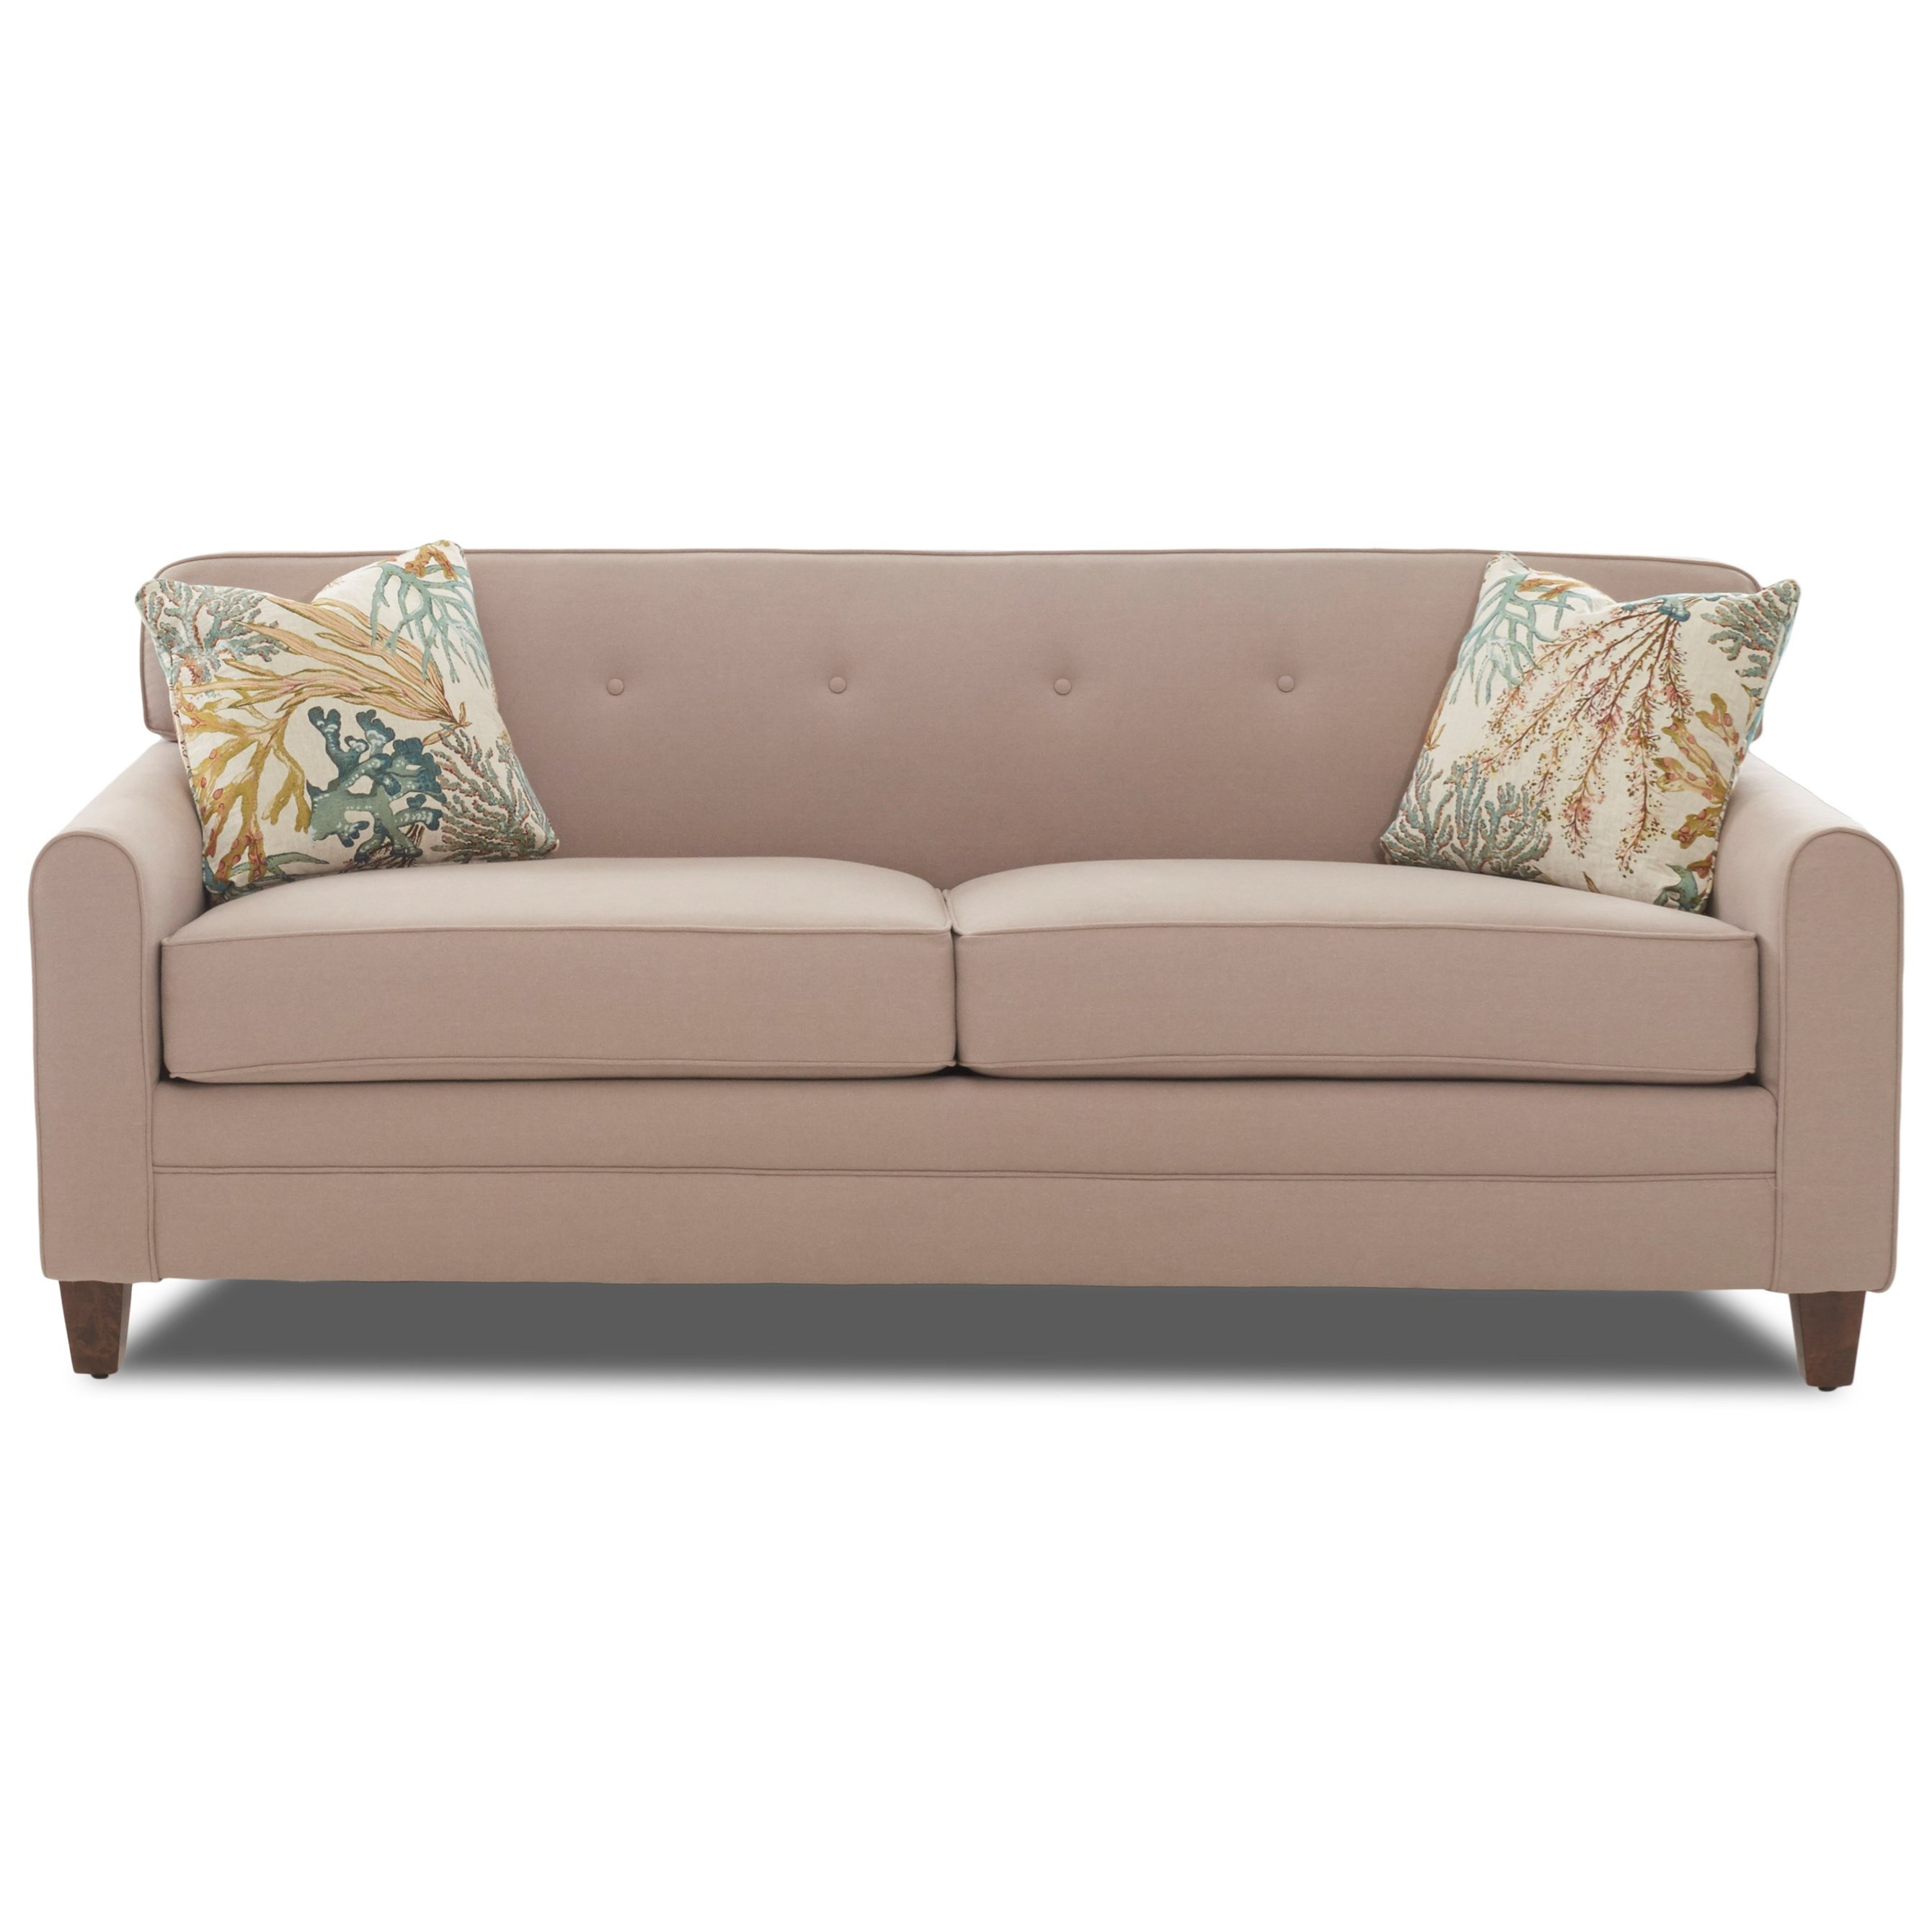 Klaussner Peyton Mid Century Modern Sleeper Sofa With